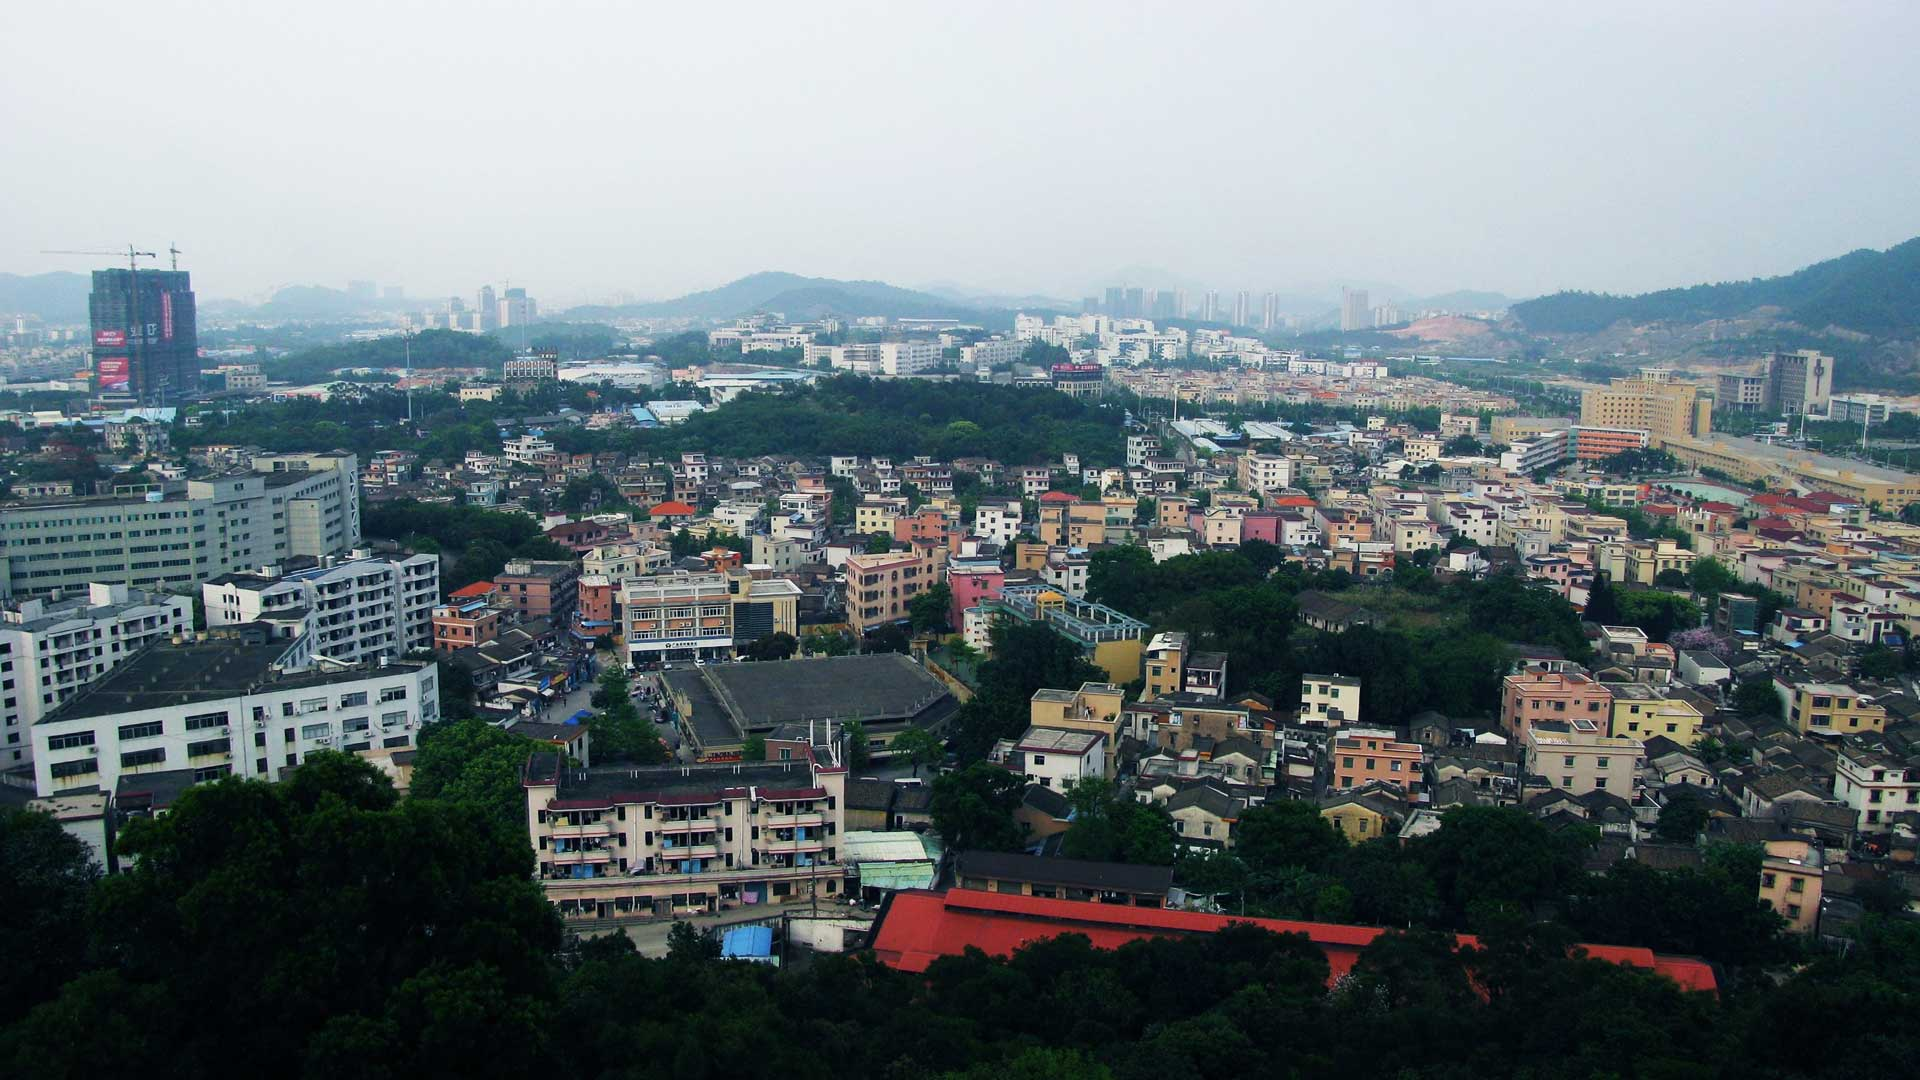 View of Zhongshan